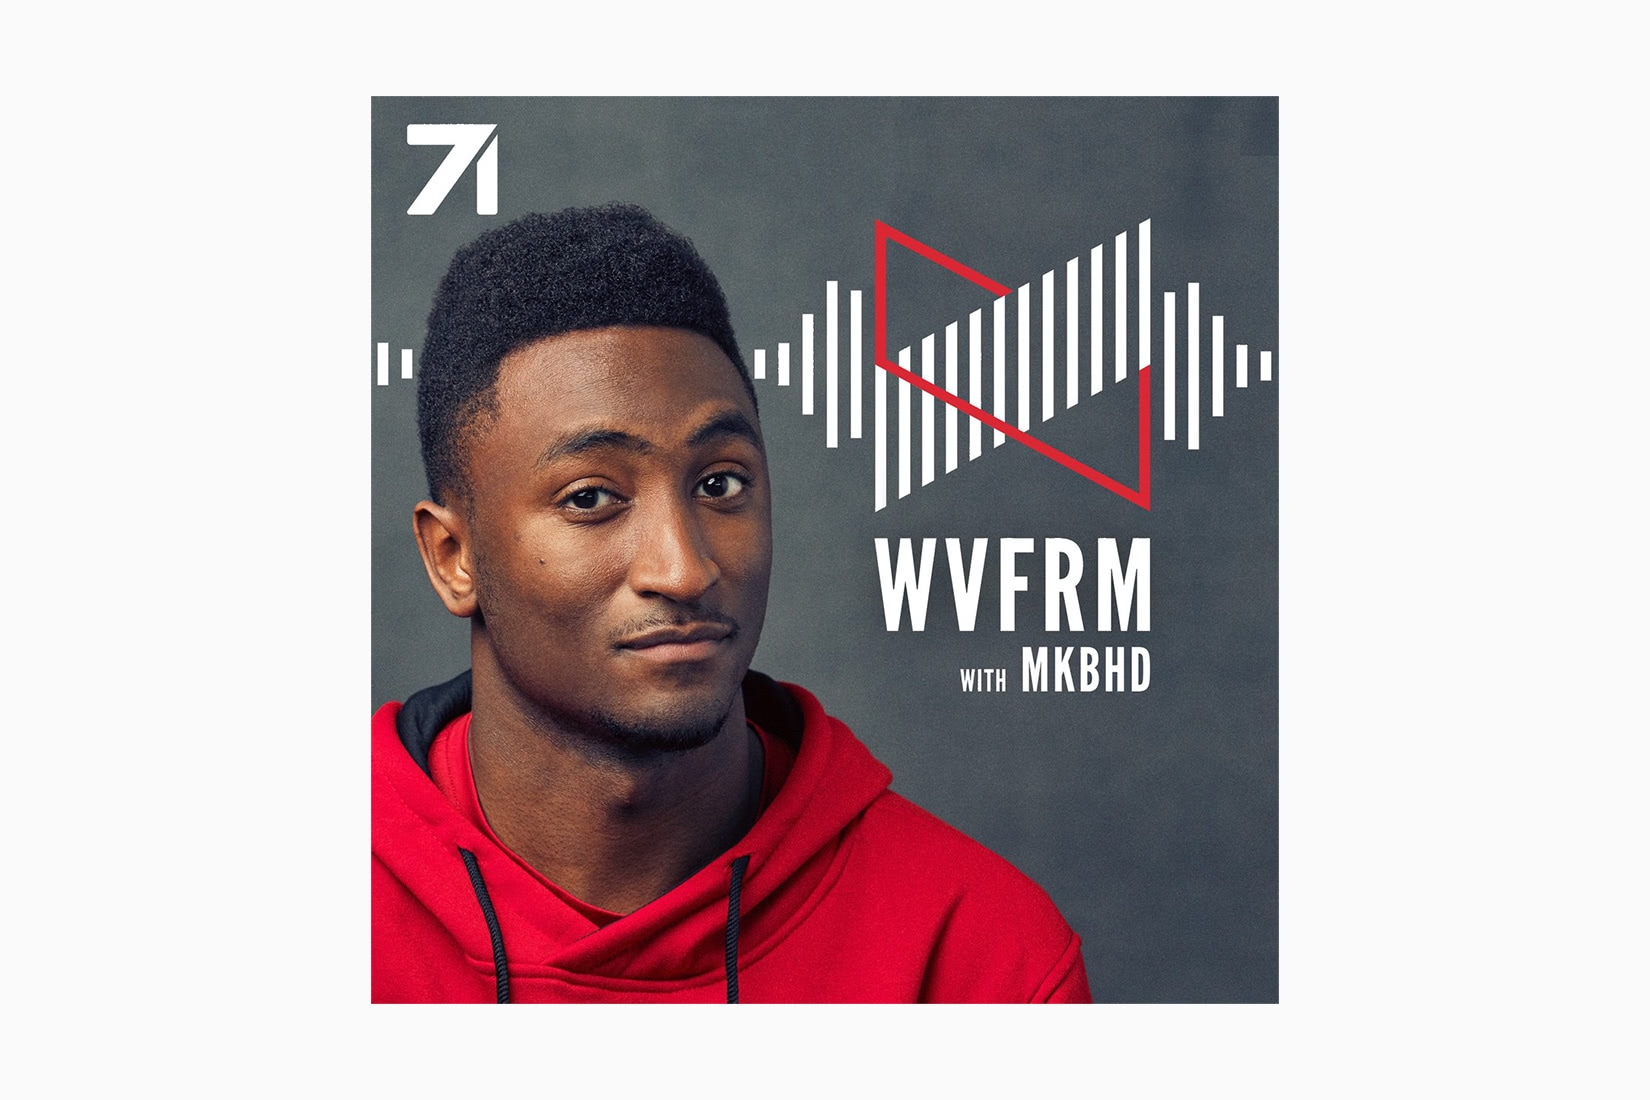 best podcasts WVFRM by MKBHD luxe digital